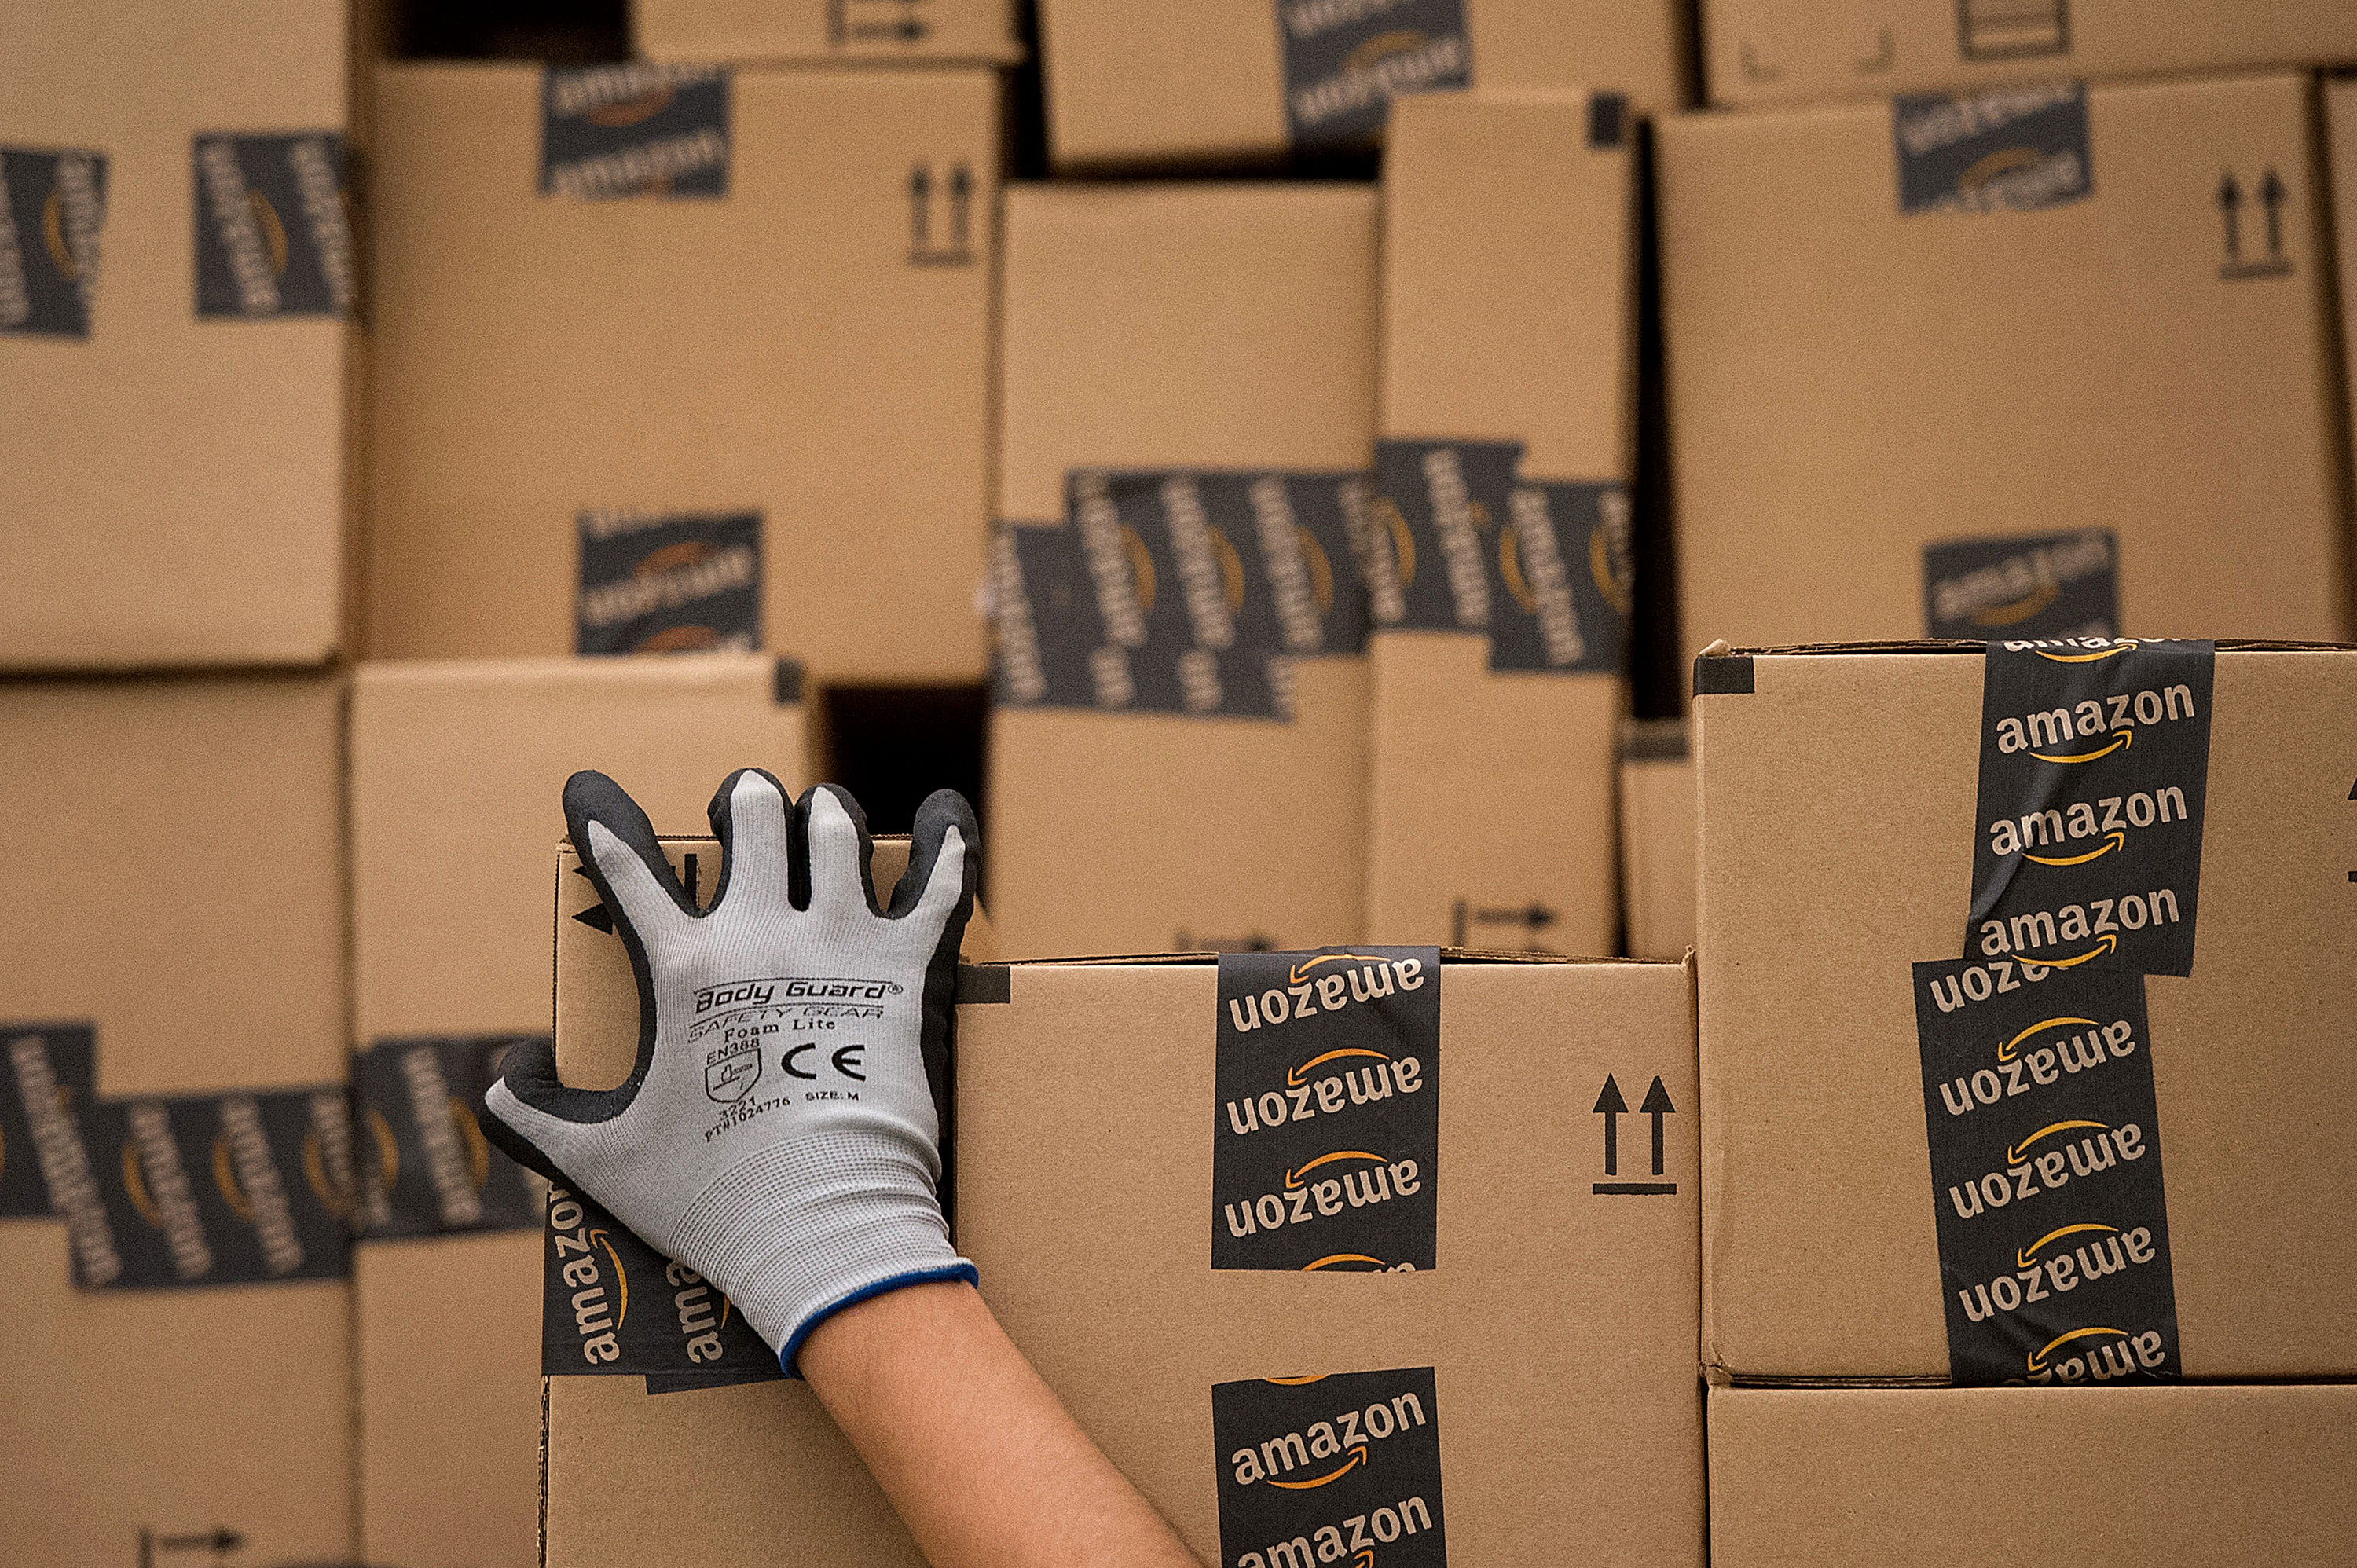 An employee loads a truck with boxes to be shipped at the Amazon.com Inc. distribution center in Phoenix, Arizona, U.S. on Monday, Nov. 26, 2012.